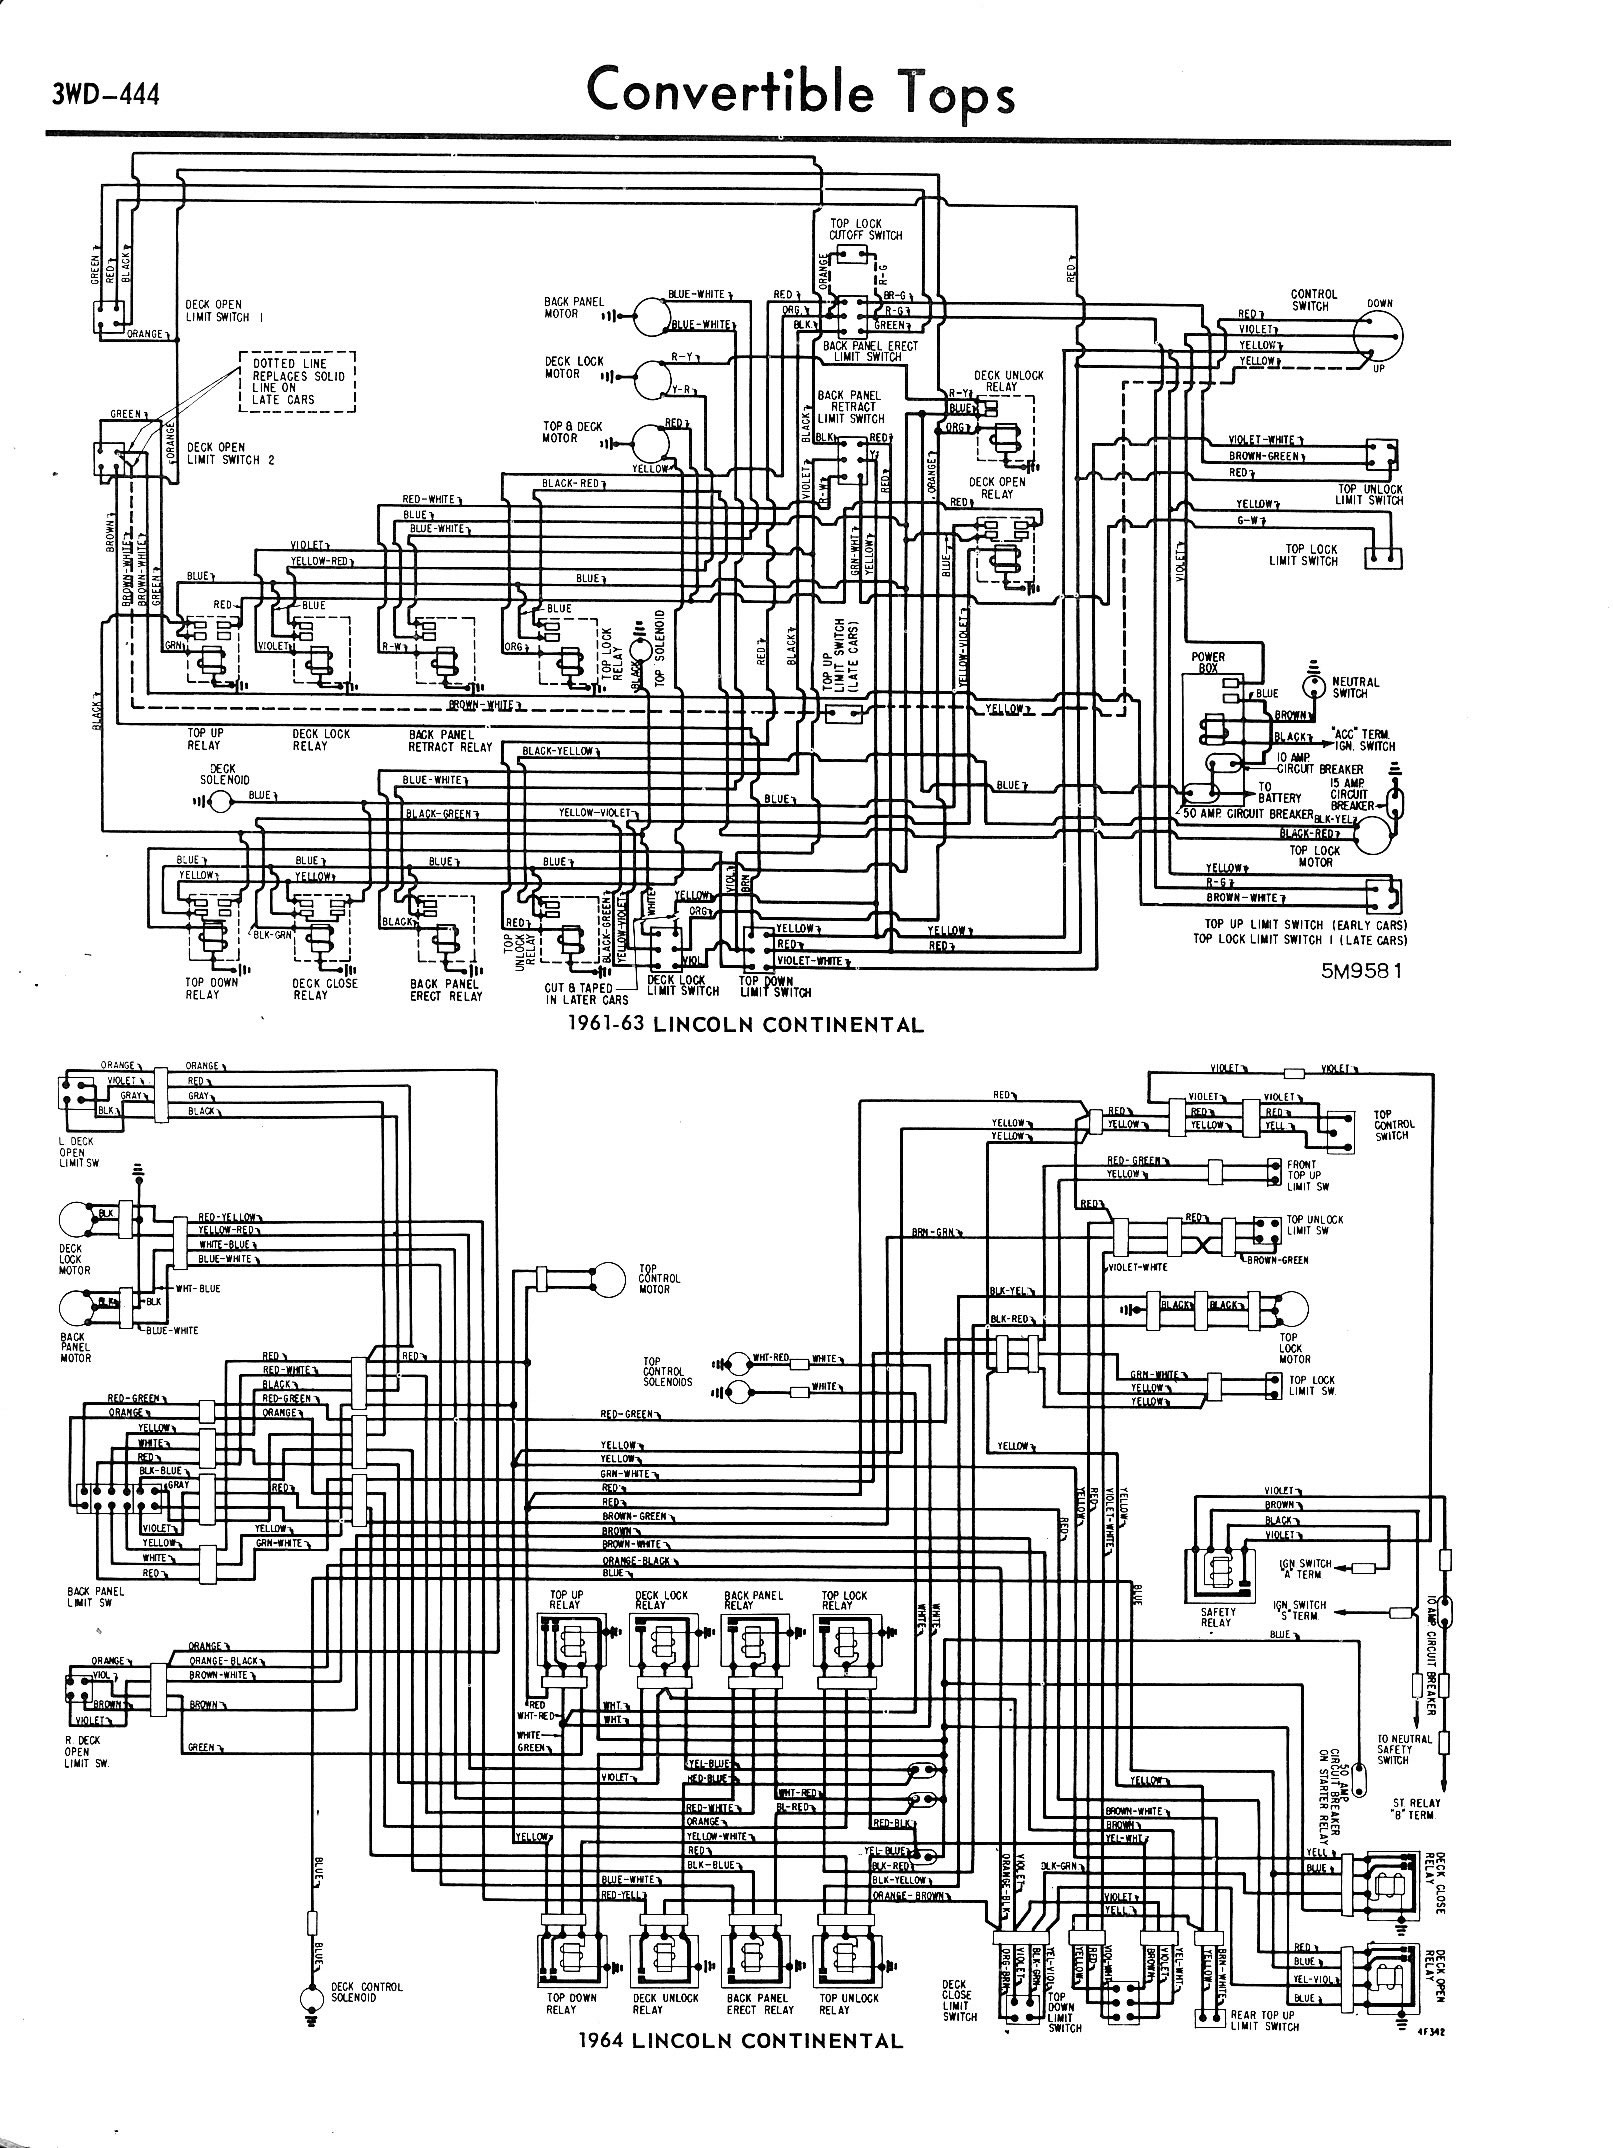 Ford Diagrams Universal Glow Plug Wiring Diagram 61 64 Lincoln Continental Figure A